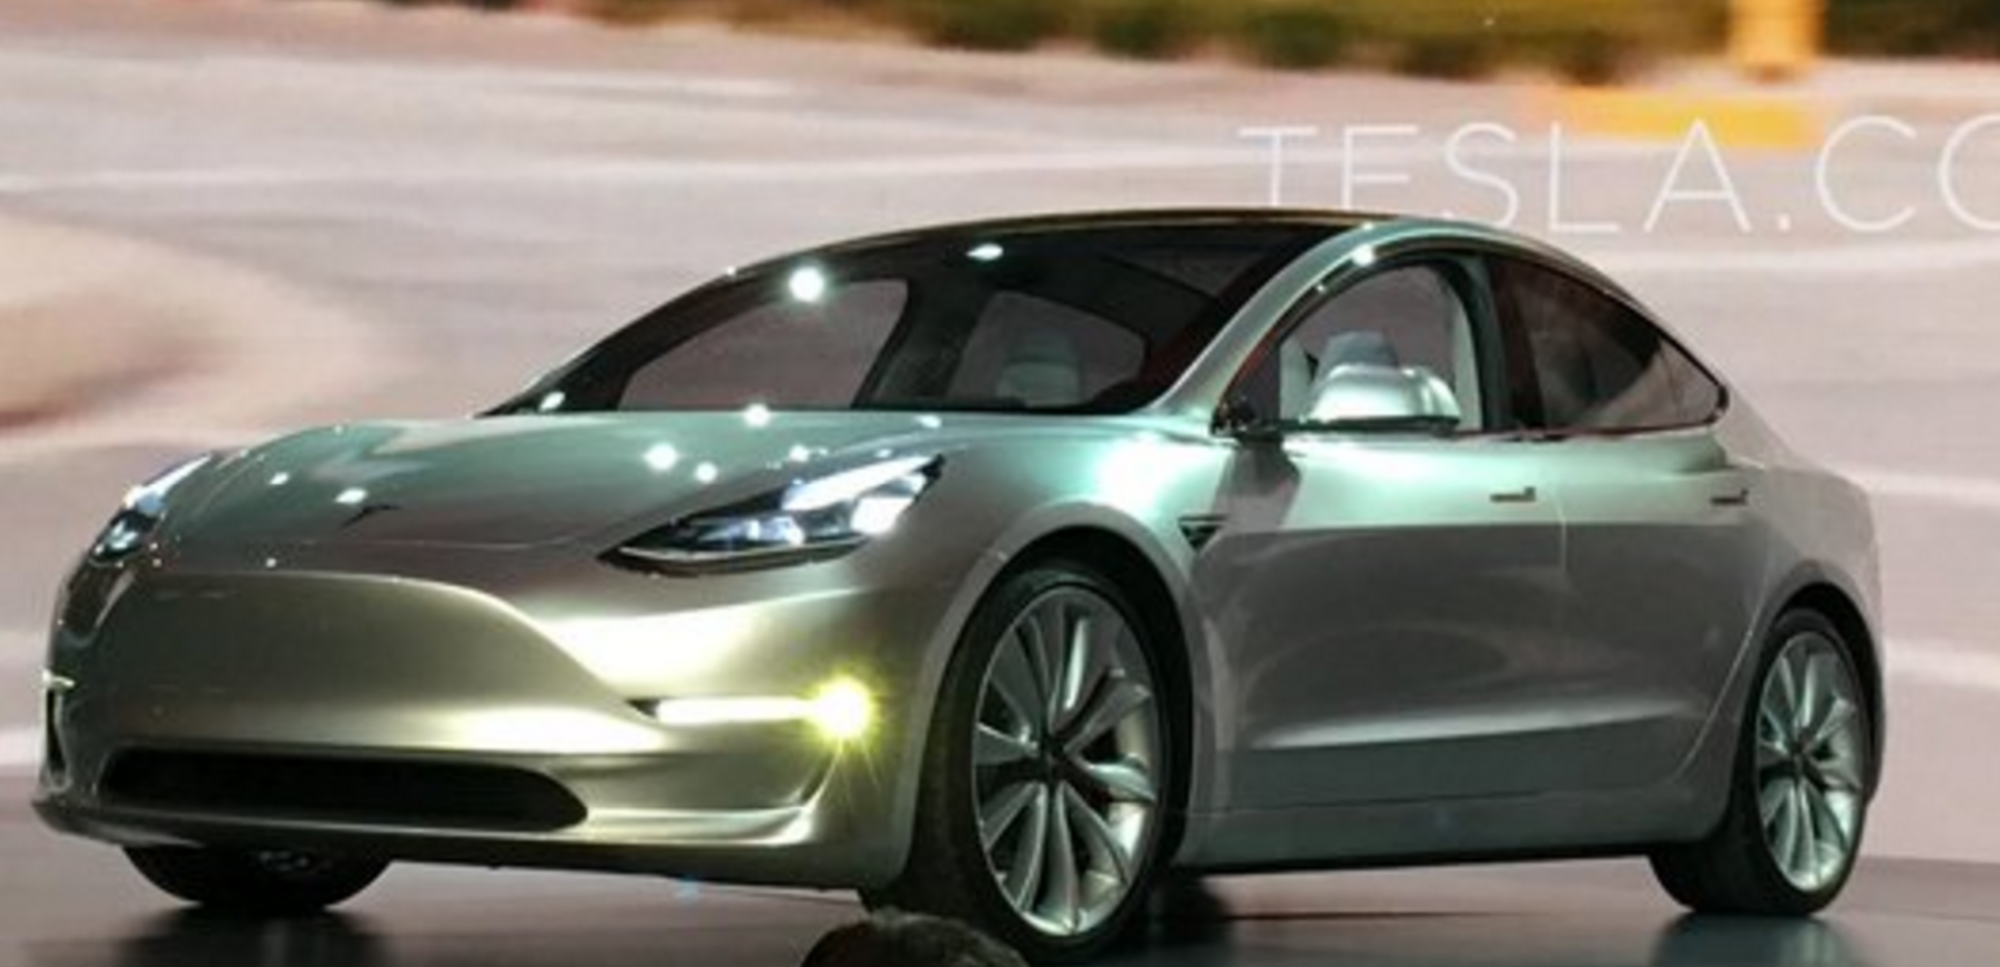 Model 3 Unveiled 3-31-16.png